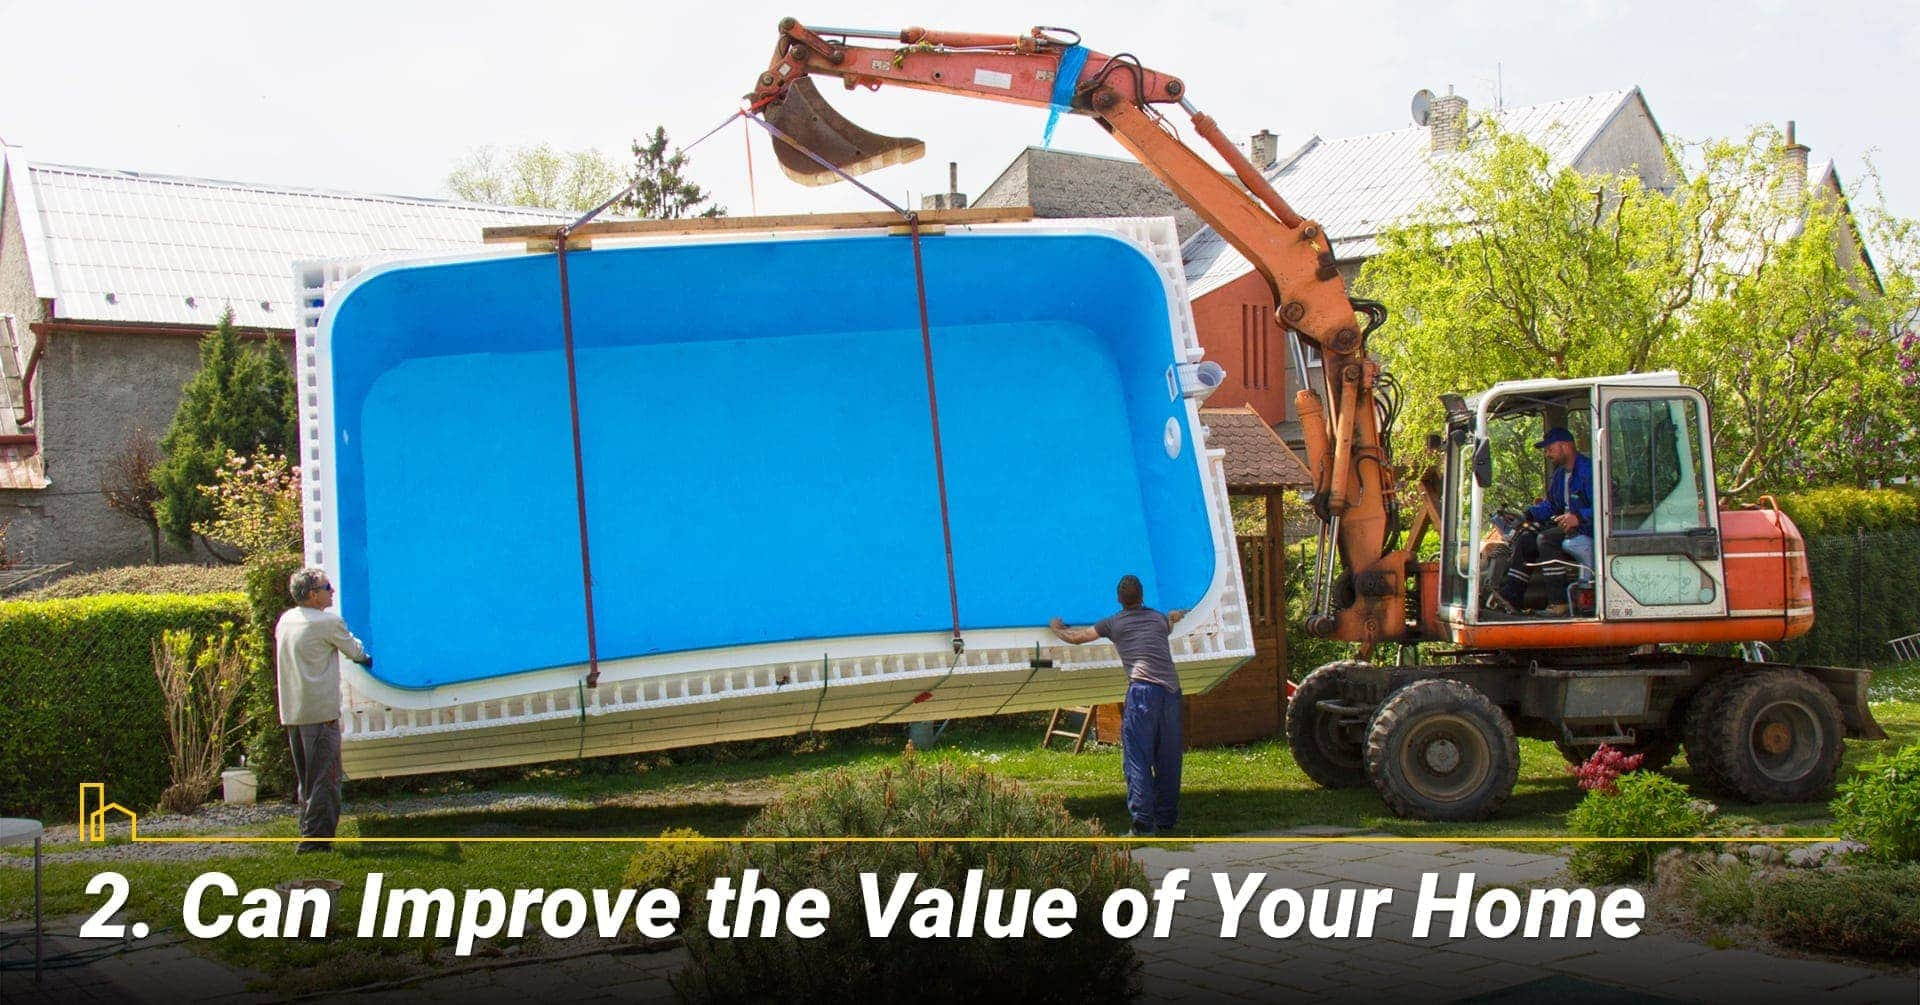 Can Improve the Value of Your Home, can increase property value